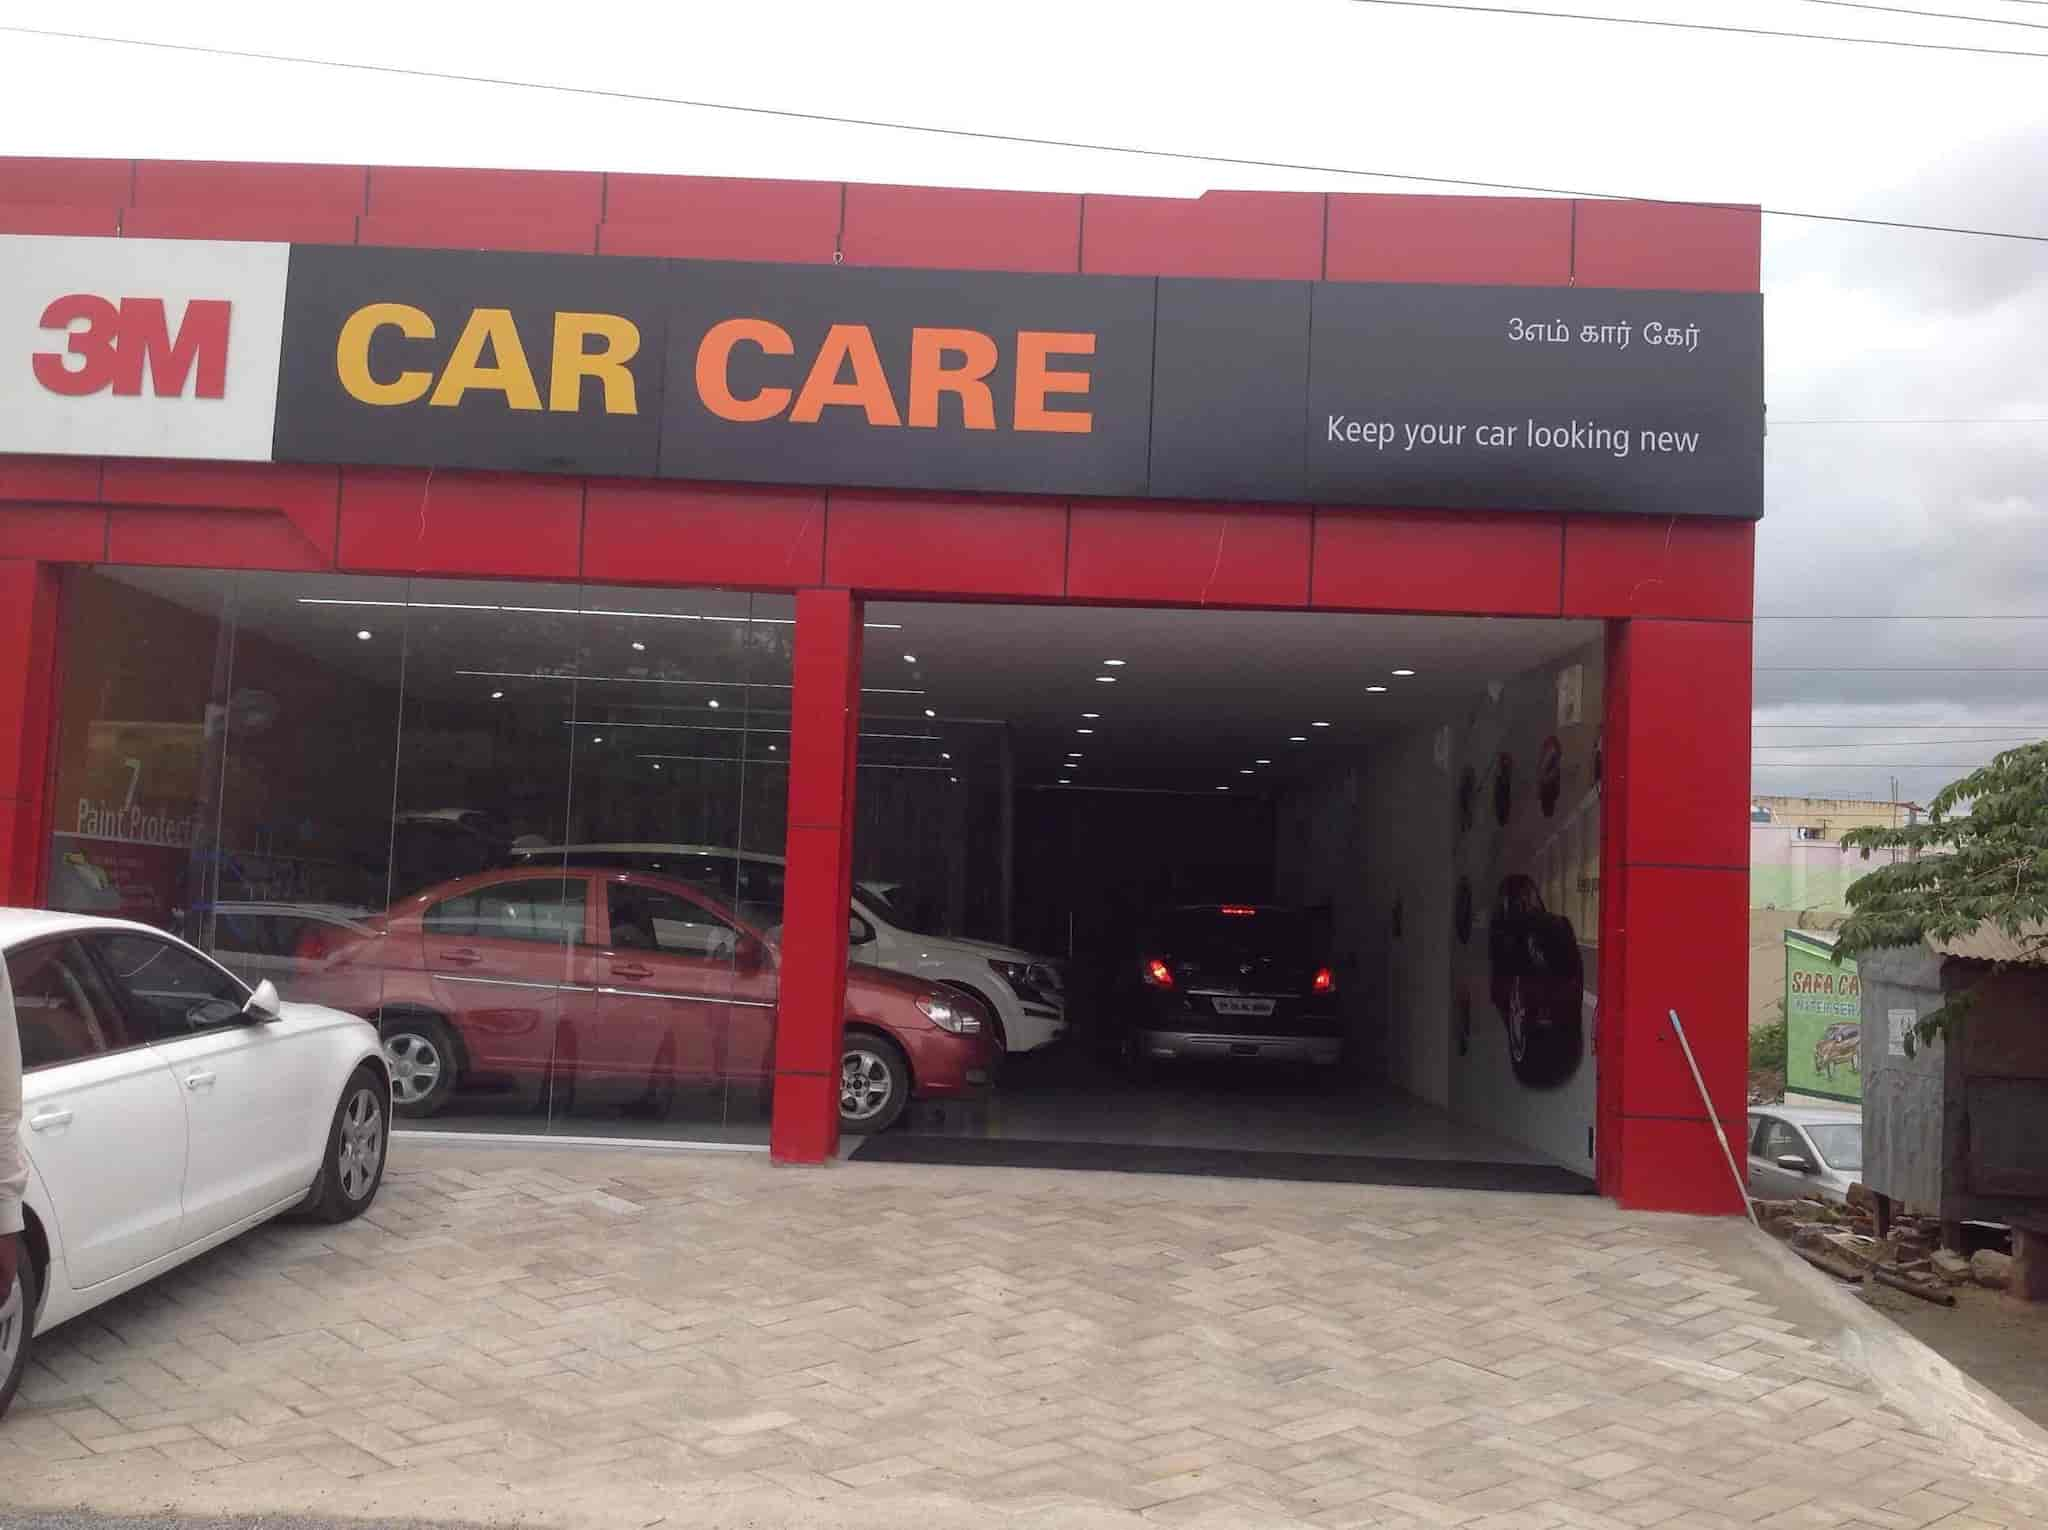 3m Car Care Hosur Car Repair Services In Hosur Justdial